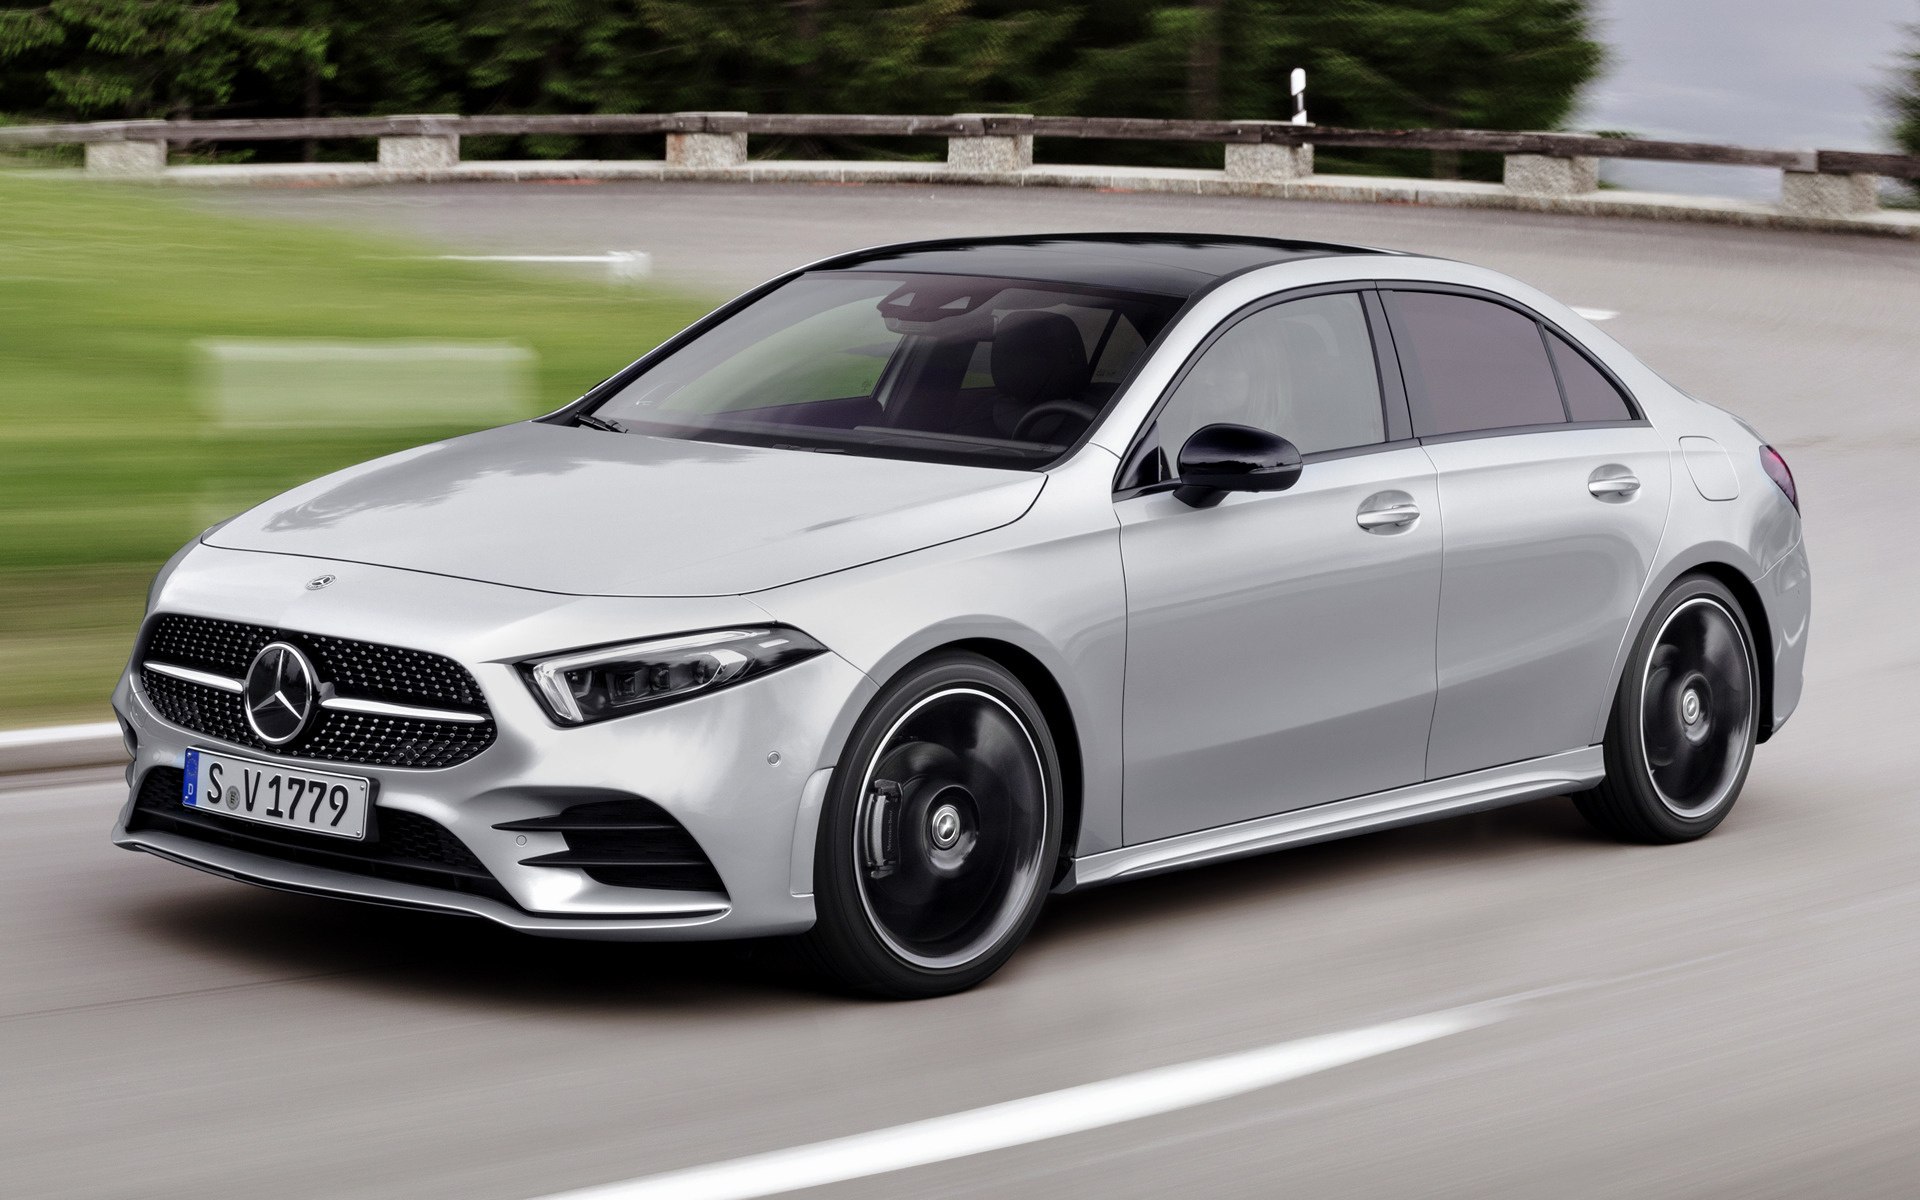 2018 Mercedes-Benz A-Class Sedan AMG Line - Wallpapers and ...